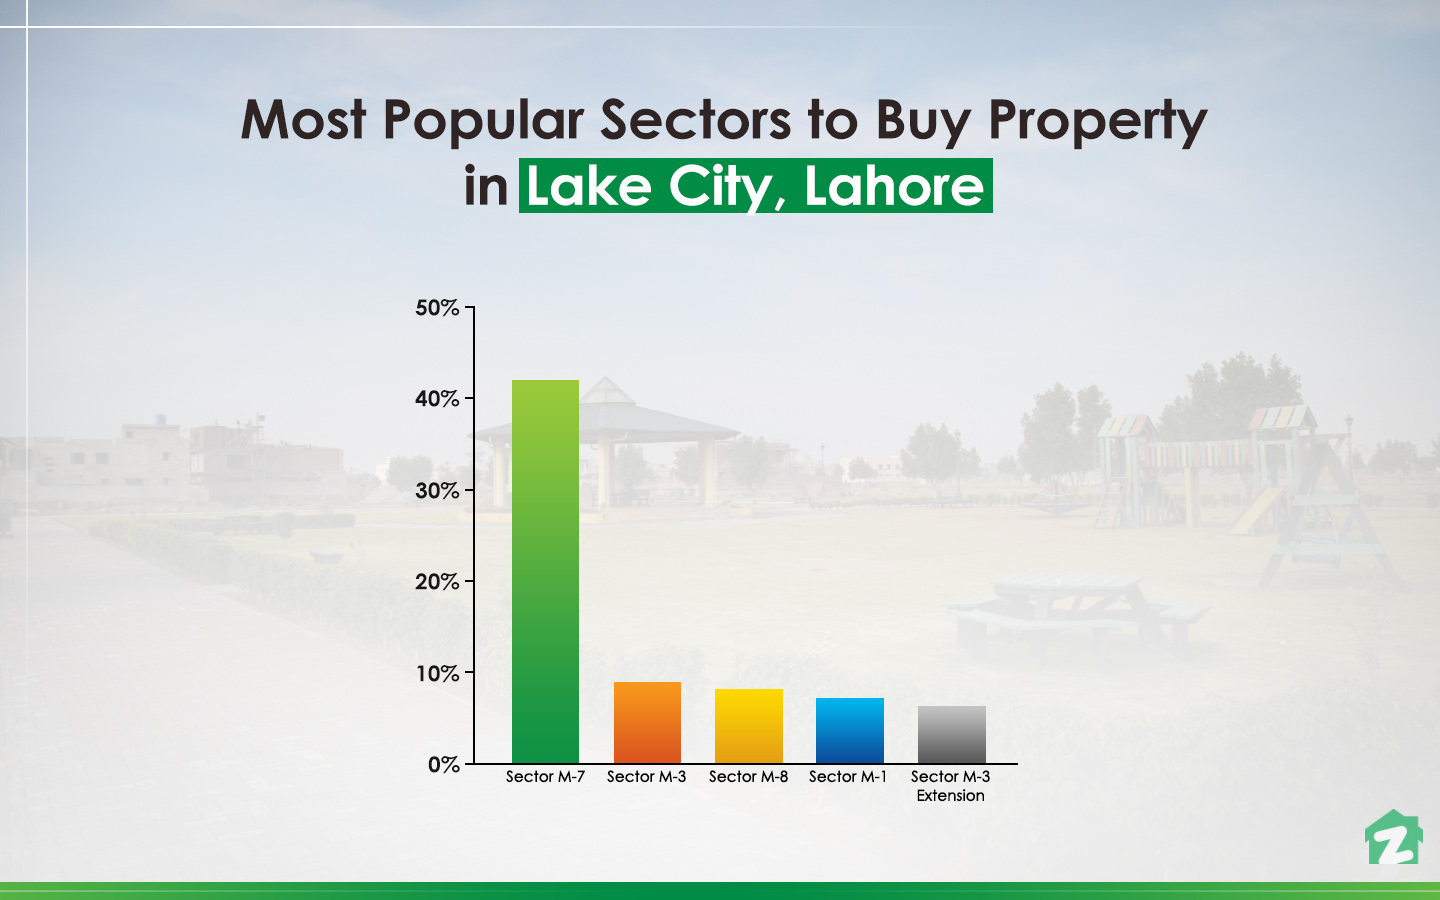 popular sectors in Lake City, Lahore